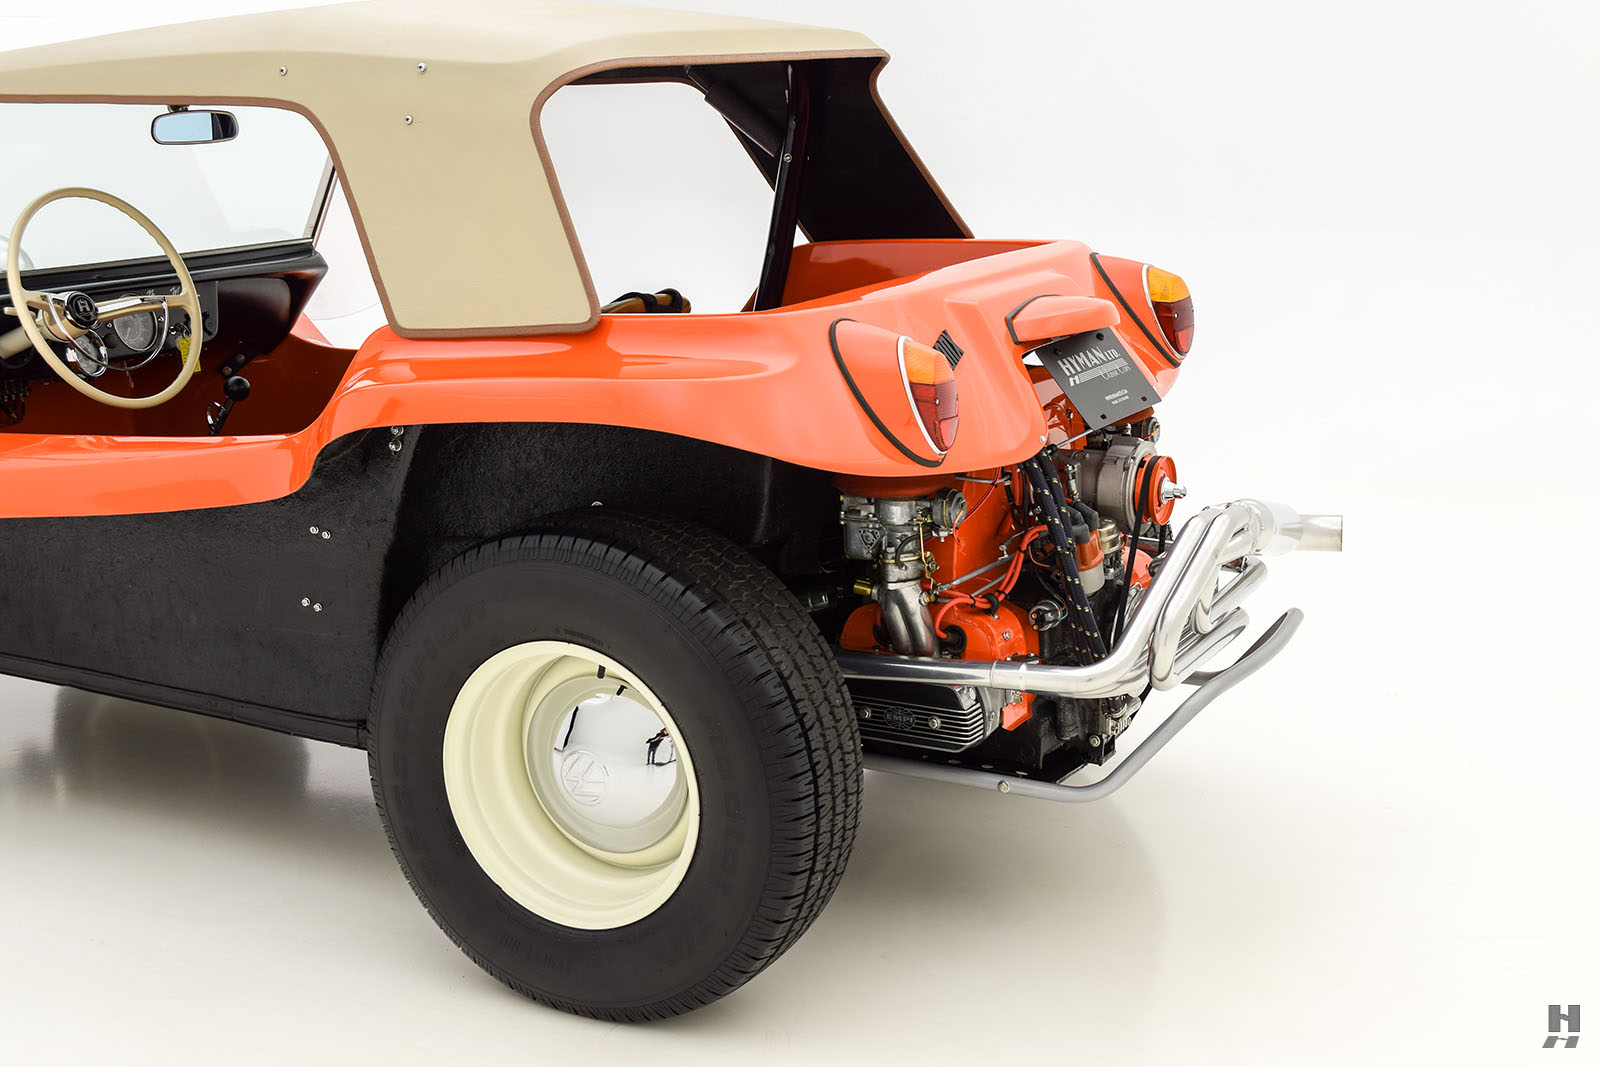 Cottage Car Sales >> 1966 Meyers Manx Dune Buggy For Sale   Buy Classic Cars   Hyman LTD